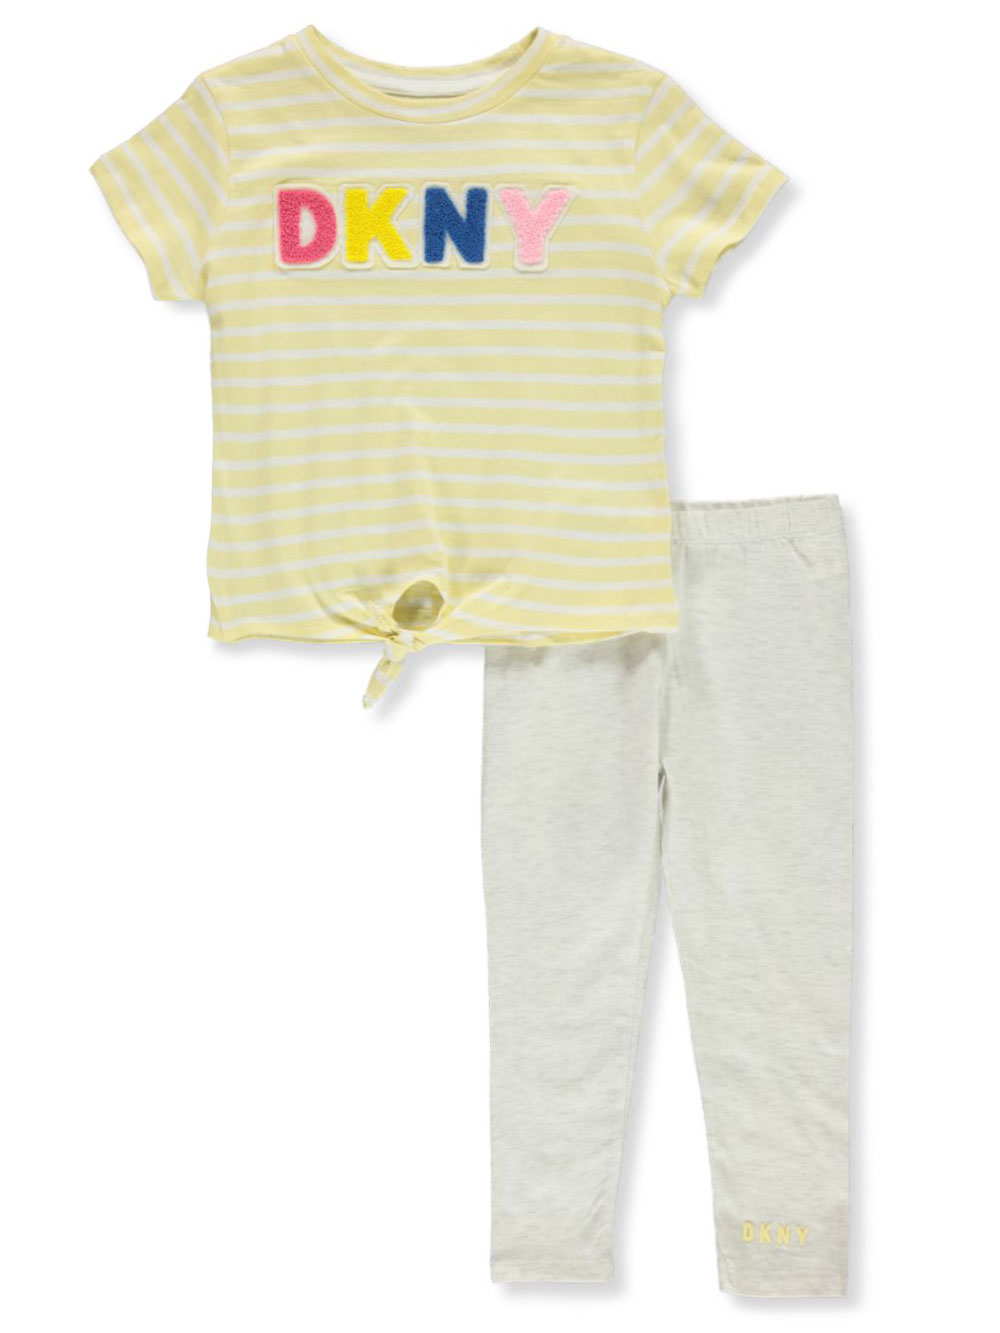 Girls Bright White Pant Sets